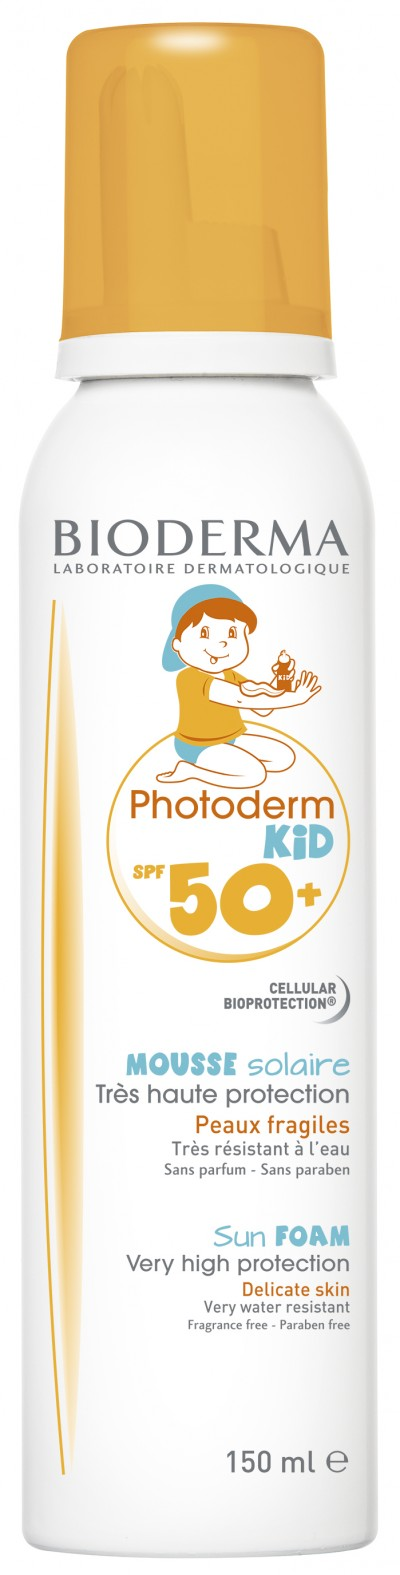 Bioderma Photoderm Kid Spuma SPF 50+ x 150 ml